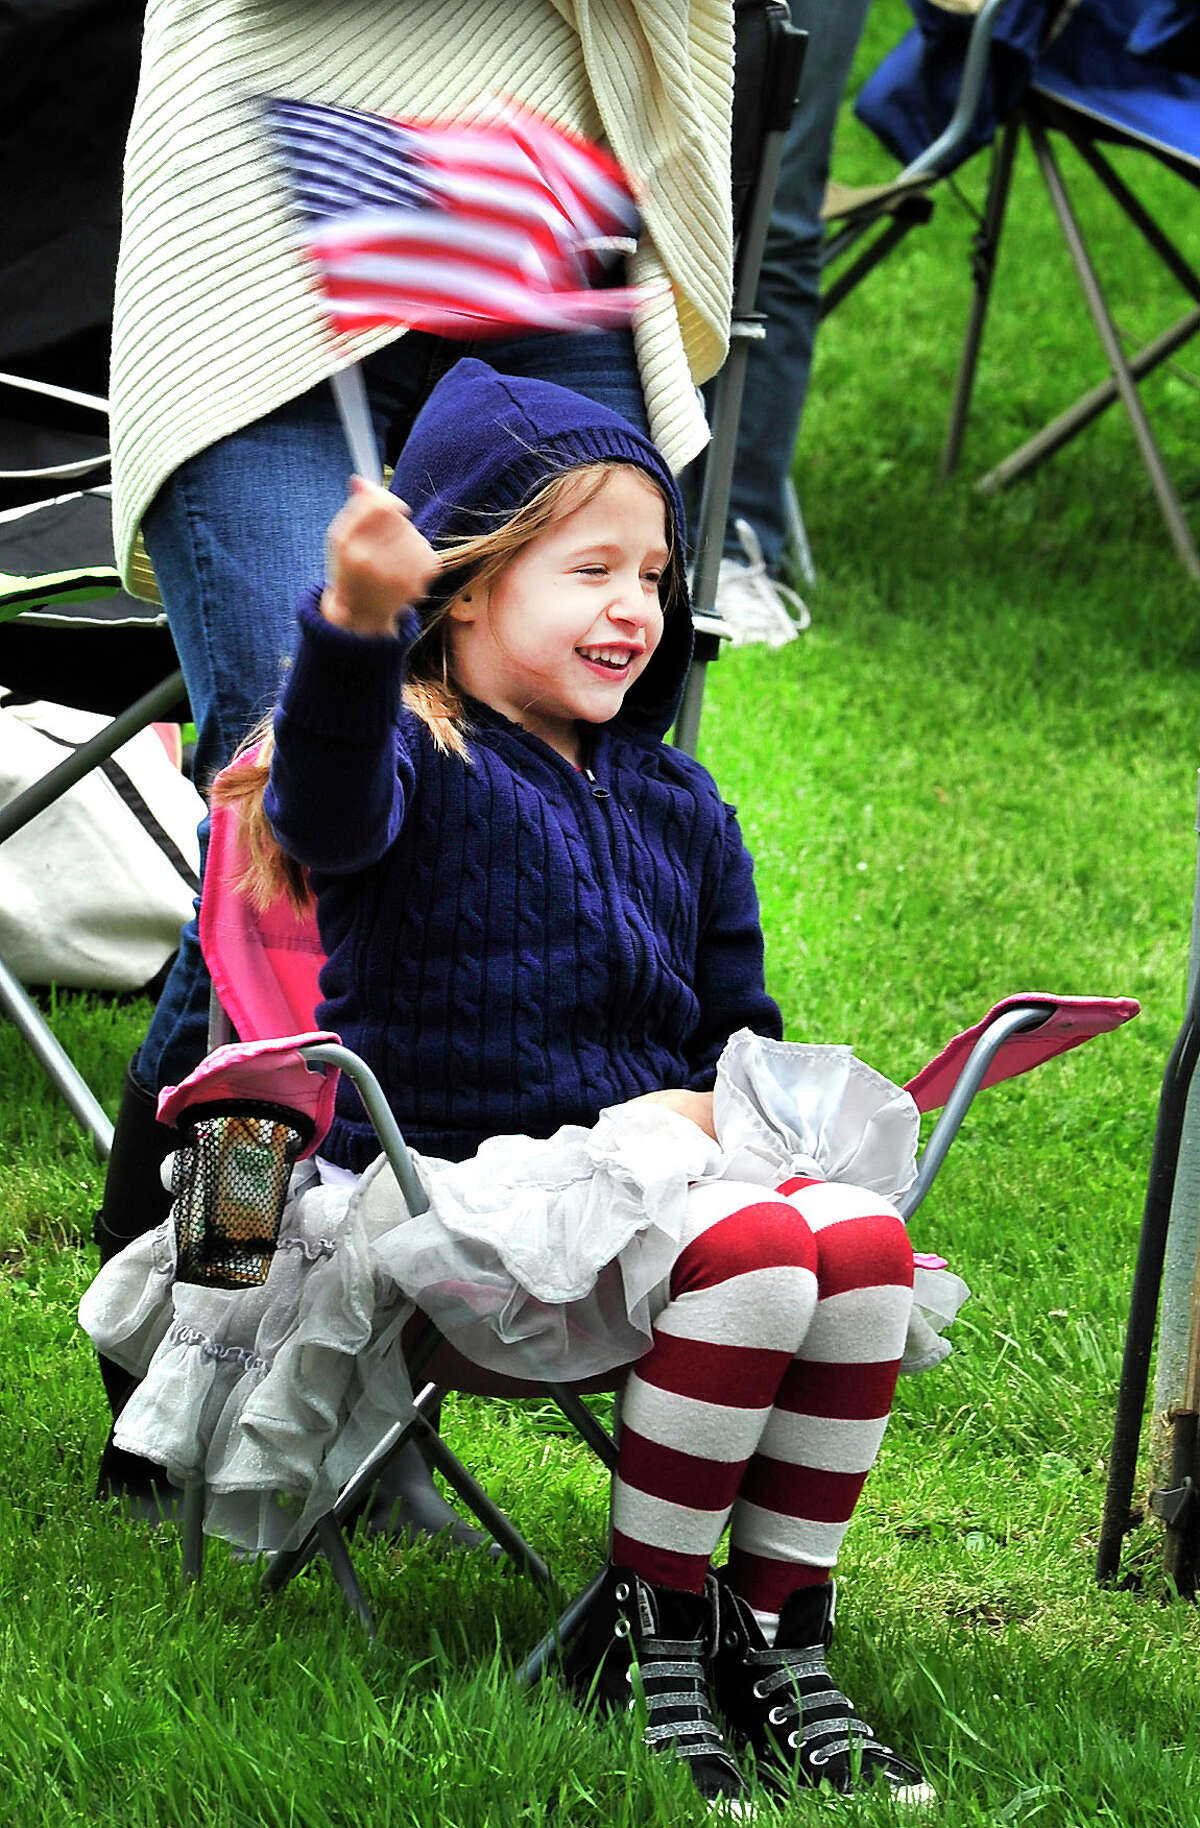 Kaylee Brower, 4, watches Brookfield's Memorial Day parade in Brookfield, Conn. Sunday, May 26, 2013.